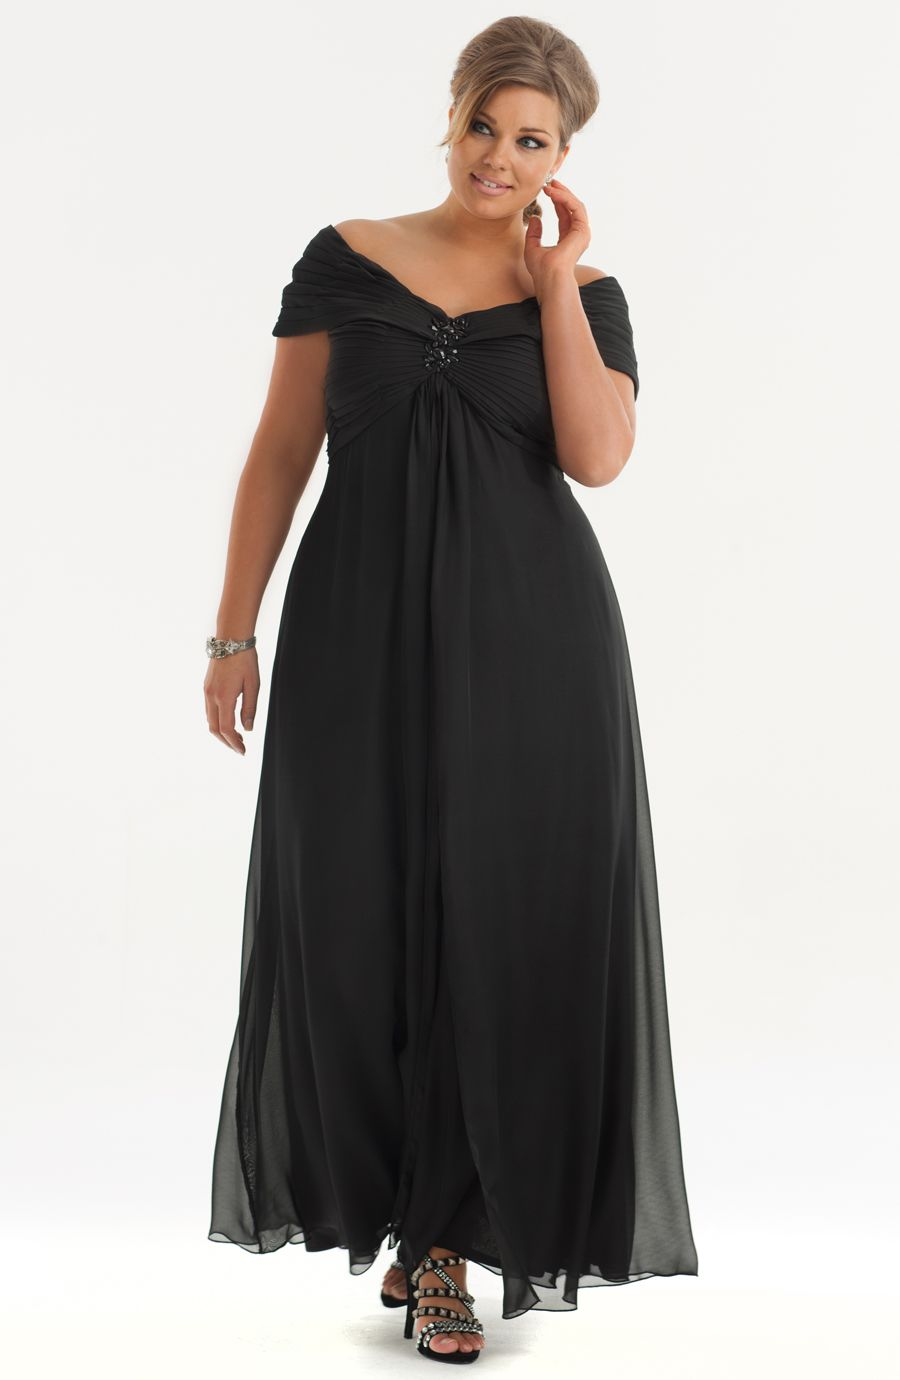 Plus size cocktail dress designs